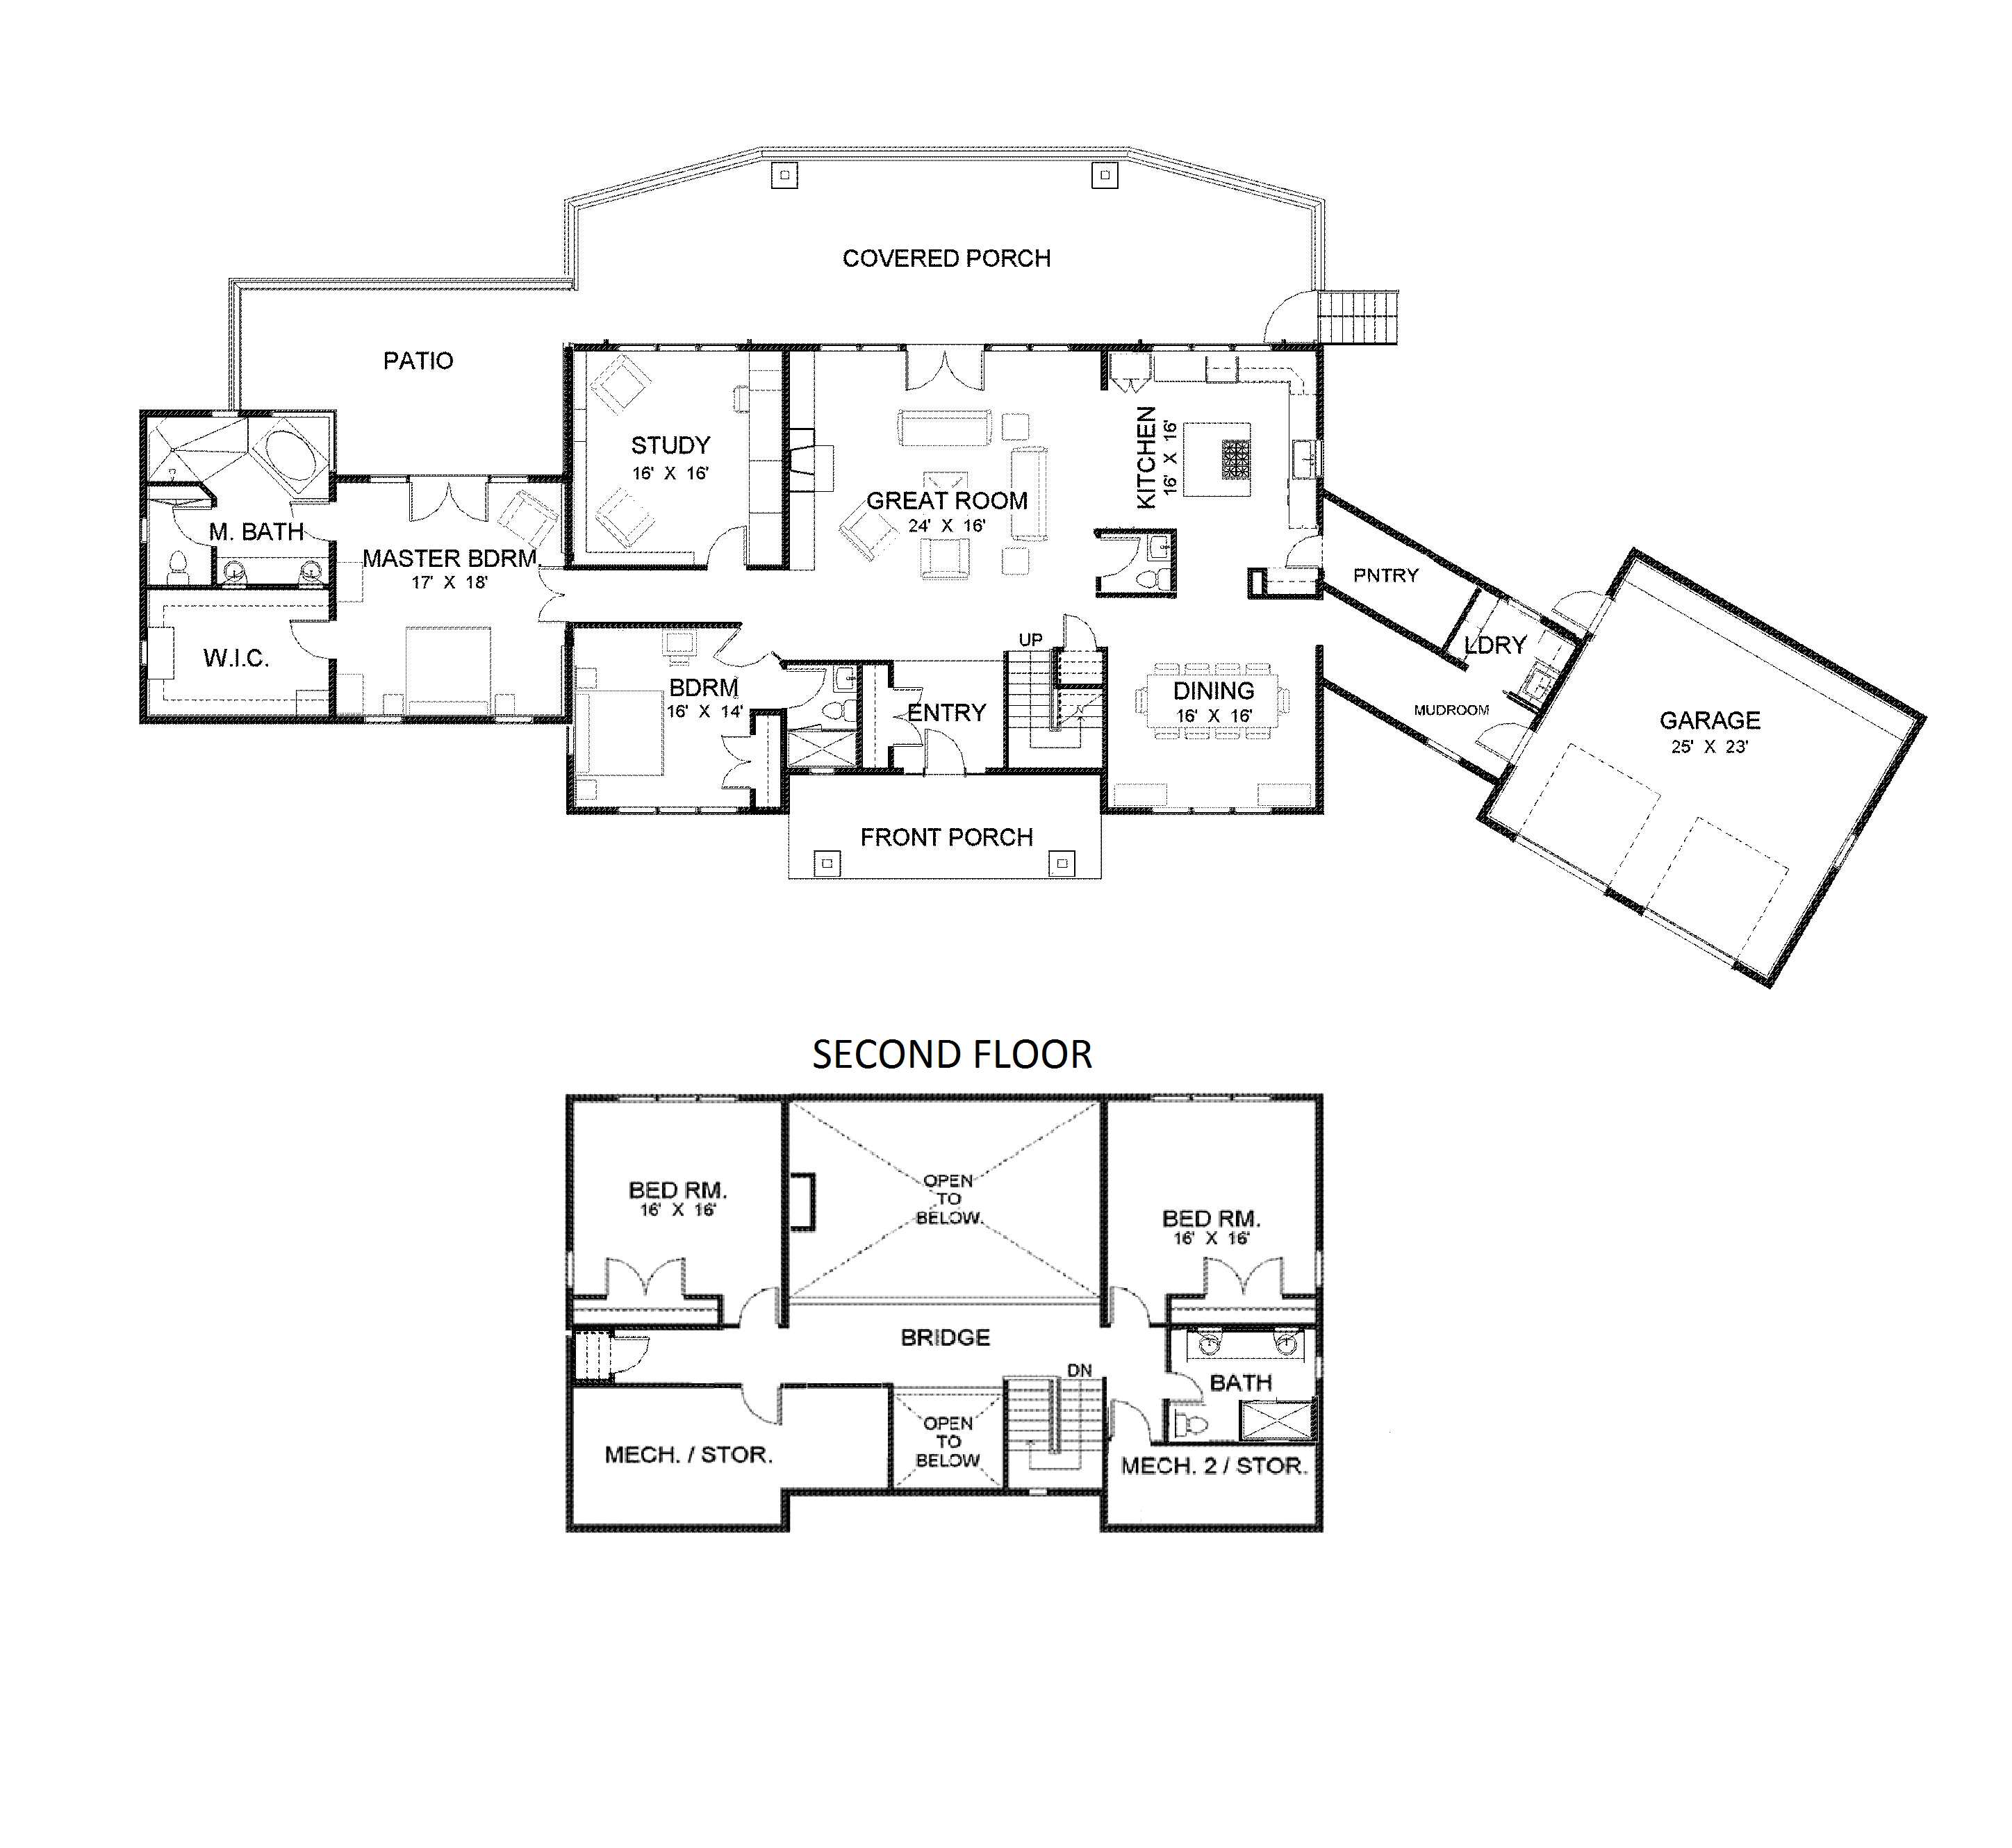 Two story rancher plan::: open floor plan with walk-in ... on small two story log homes, small living room floor plans, small two story modular homes, small office building floor plans, small duplex floor plans, small clubhouse floor plans, small dining room floor plans, small 3 car garage floor plans, small two story home layout,